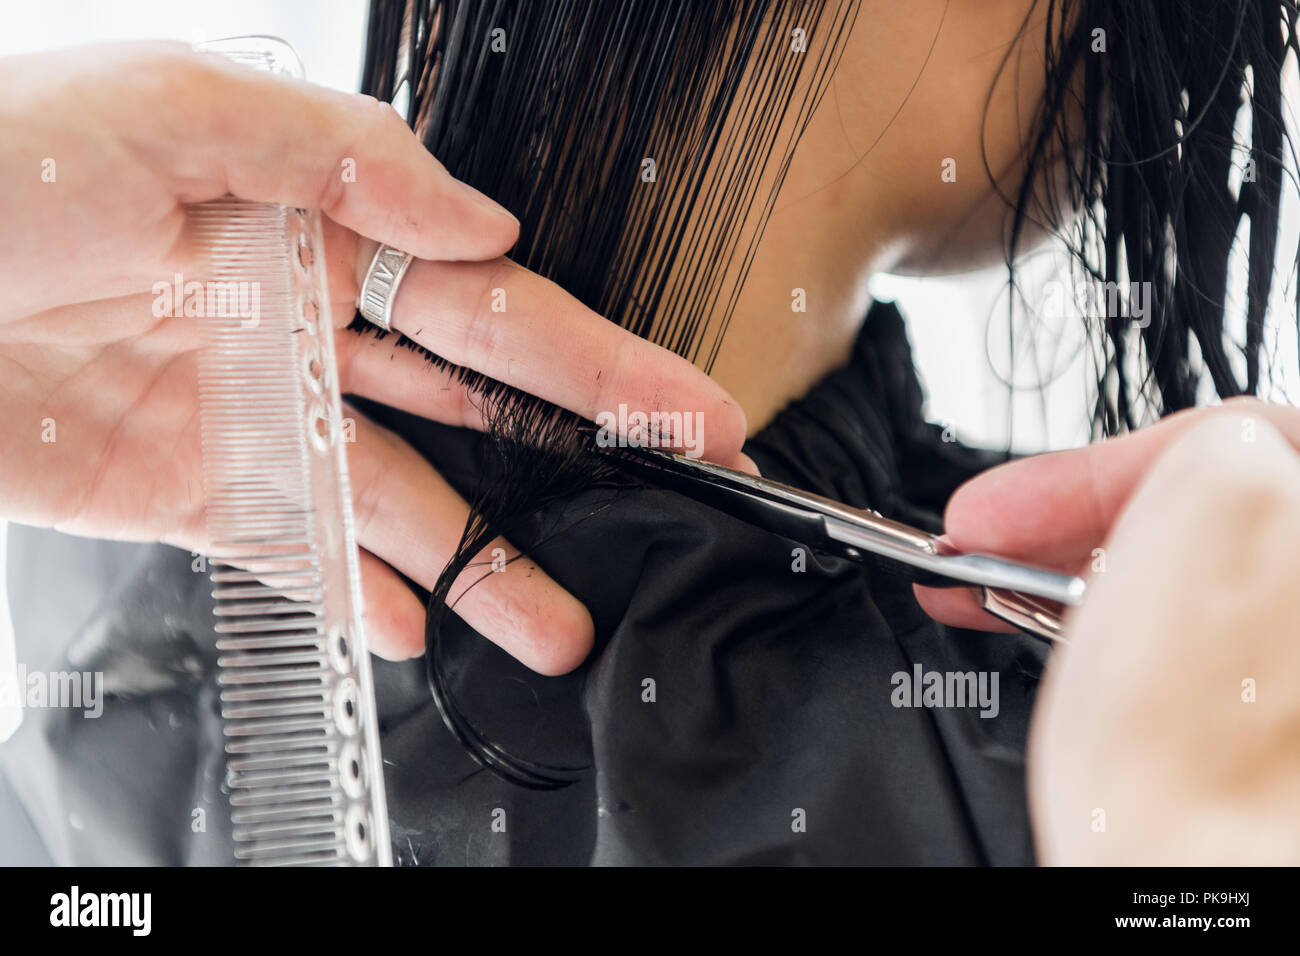 Man's hands cut and comb female dark brown hair in a beauty salon with mirrors - Stock Image